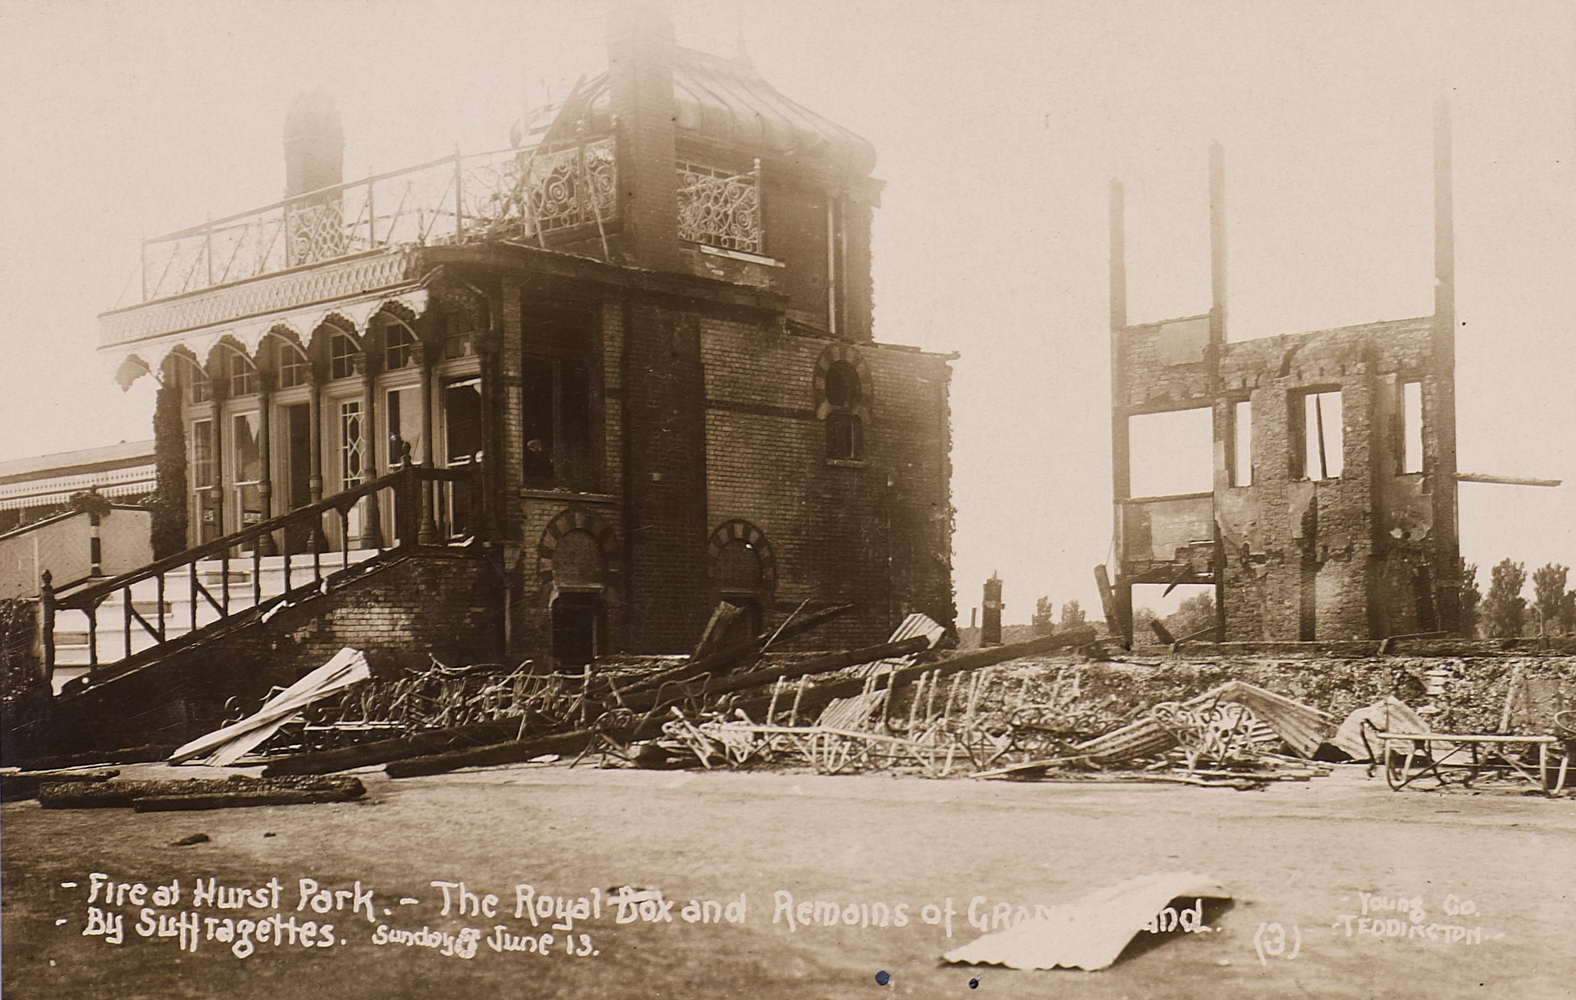 Postcard, Fire at Hurst Park, the Royal Box and Remains of Grand Stand, by Suffragettes, Sunday 8 June 1913